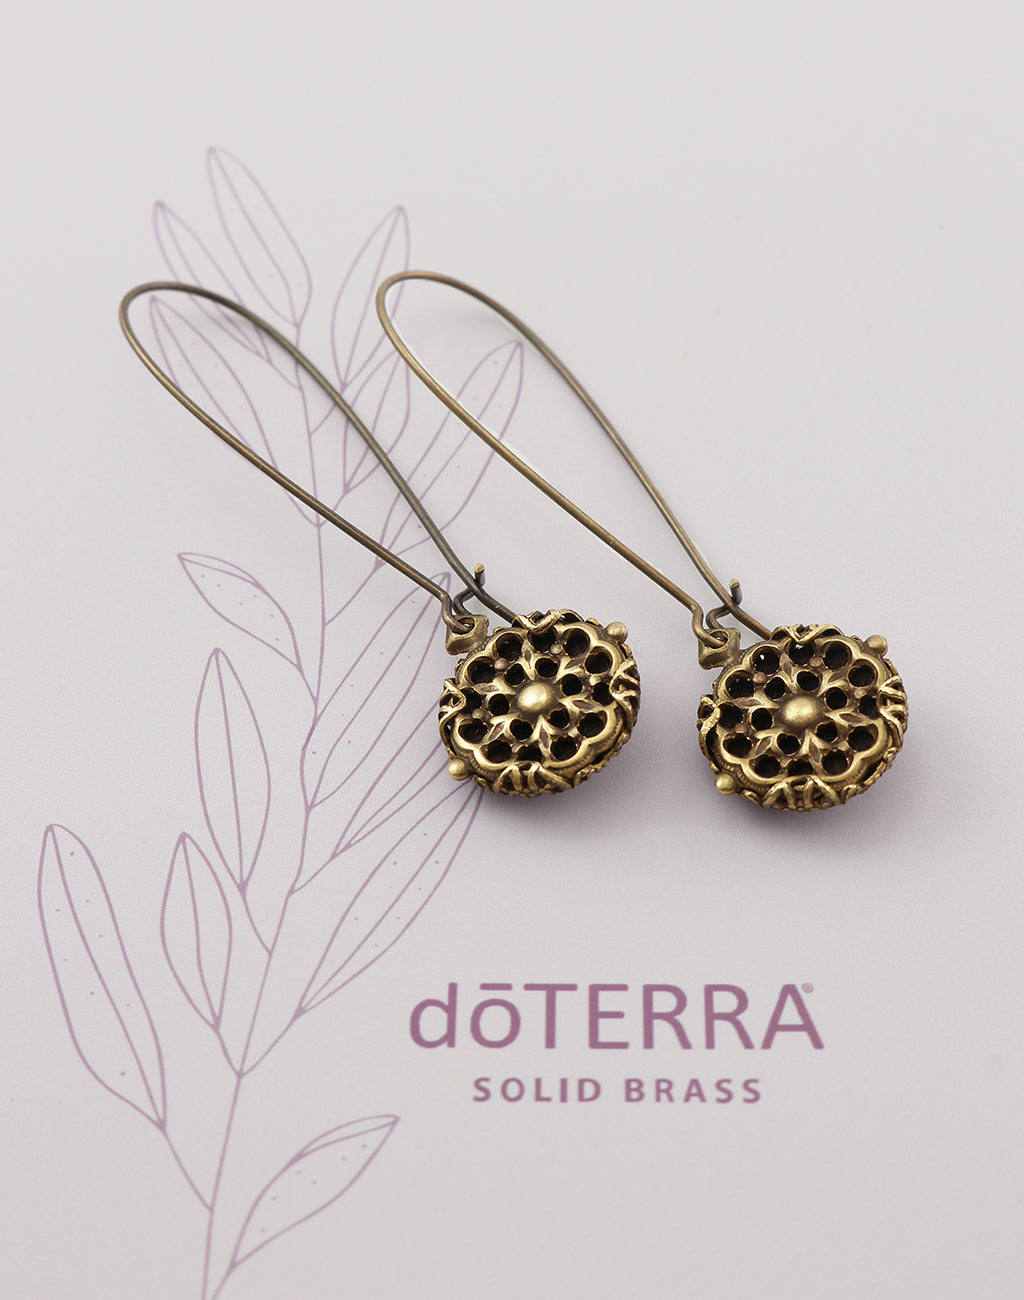 doTERRA Earrings